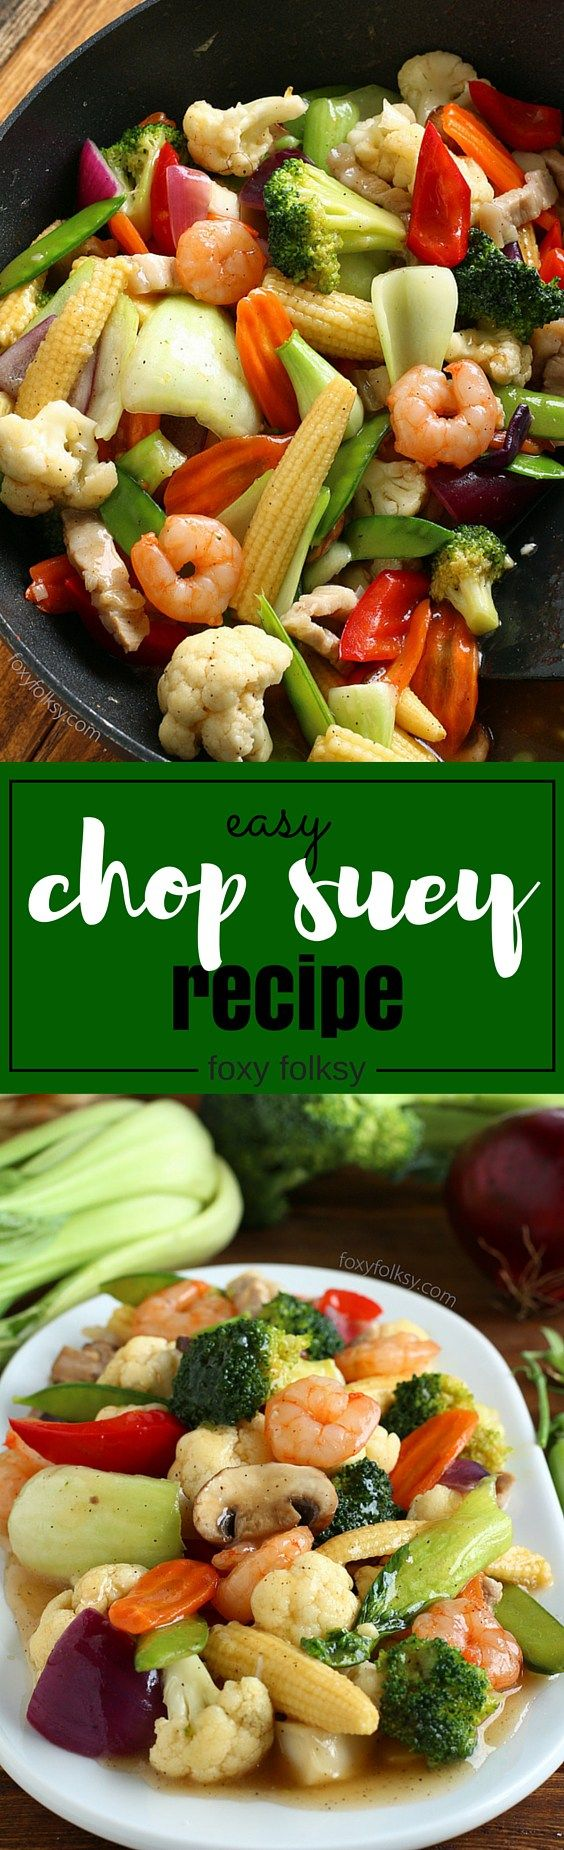 Try this Chop Suey recipe for an Easy stir-fry of colorful vegetables with thick sauce. A great vegetable dish for a dinner party or just for everyday healthy meal. | www.foxyfolksy #recipe #pork #shrimps